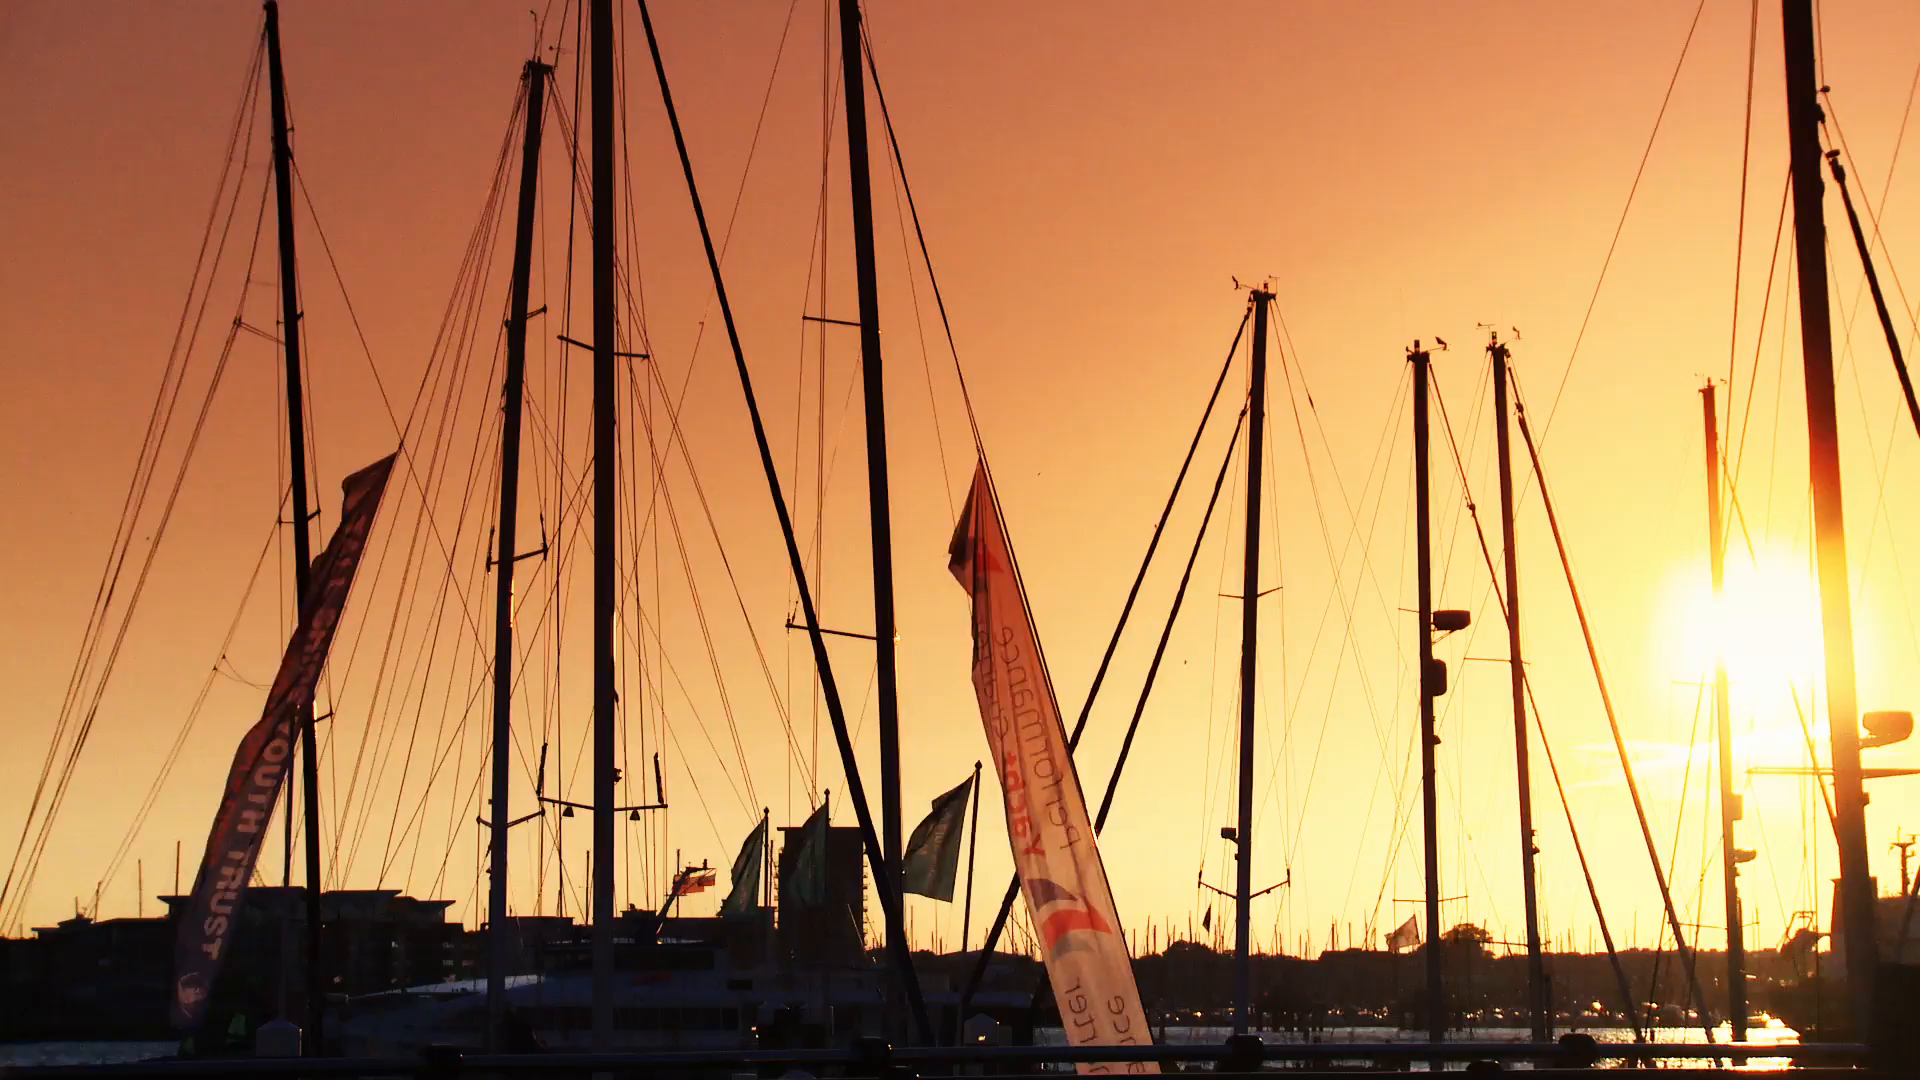 Sunset over yachts 3.mov poster